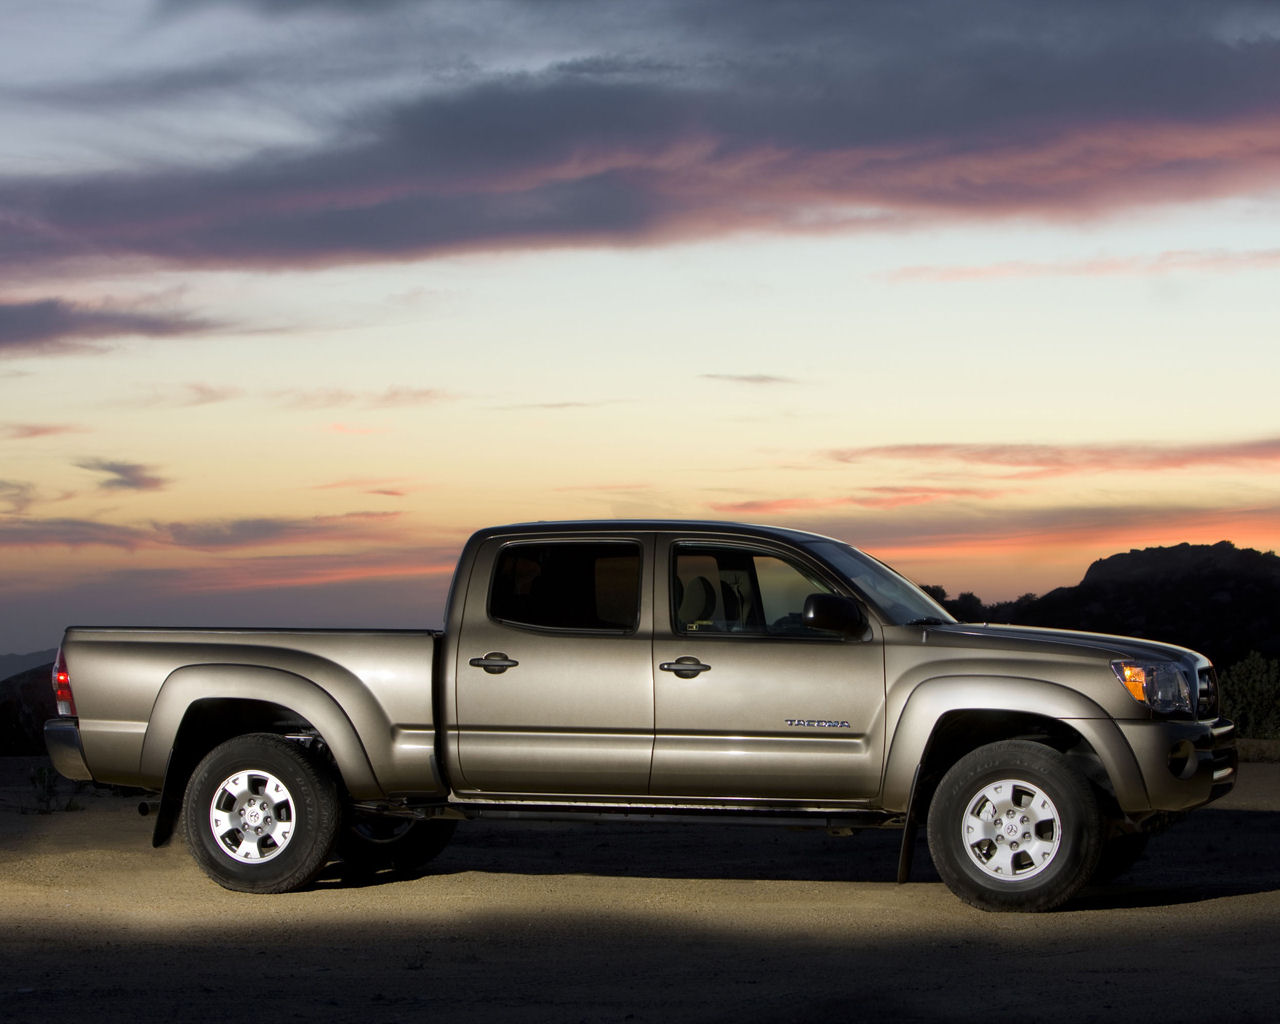 Tacoma Back Pages >> Toyota Tacoma, PreRunner, AWD, V6 - Free 1280x1024 Wallpaper / Desktop Background Picture